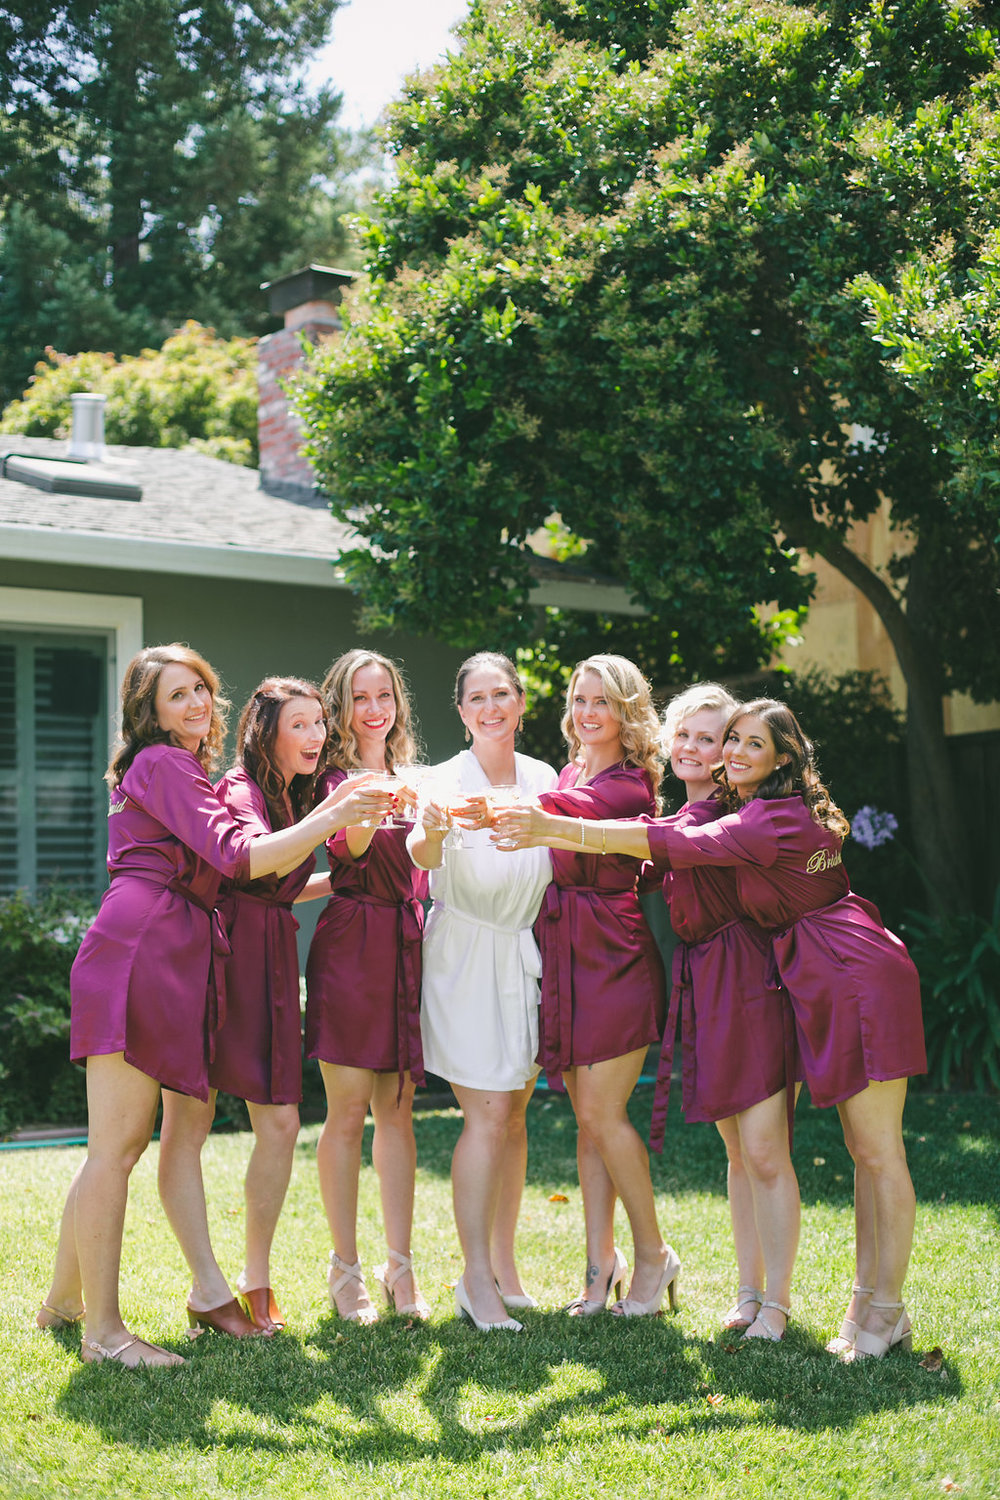 bridal party wearing maroon robes silk robes with bride in white cheering with champagne bride wearing glowing natural glamorous makeup by kim baker beauty san jose california makeup artist